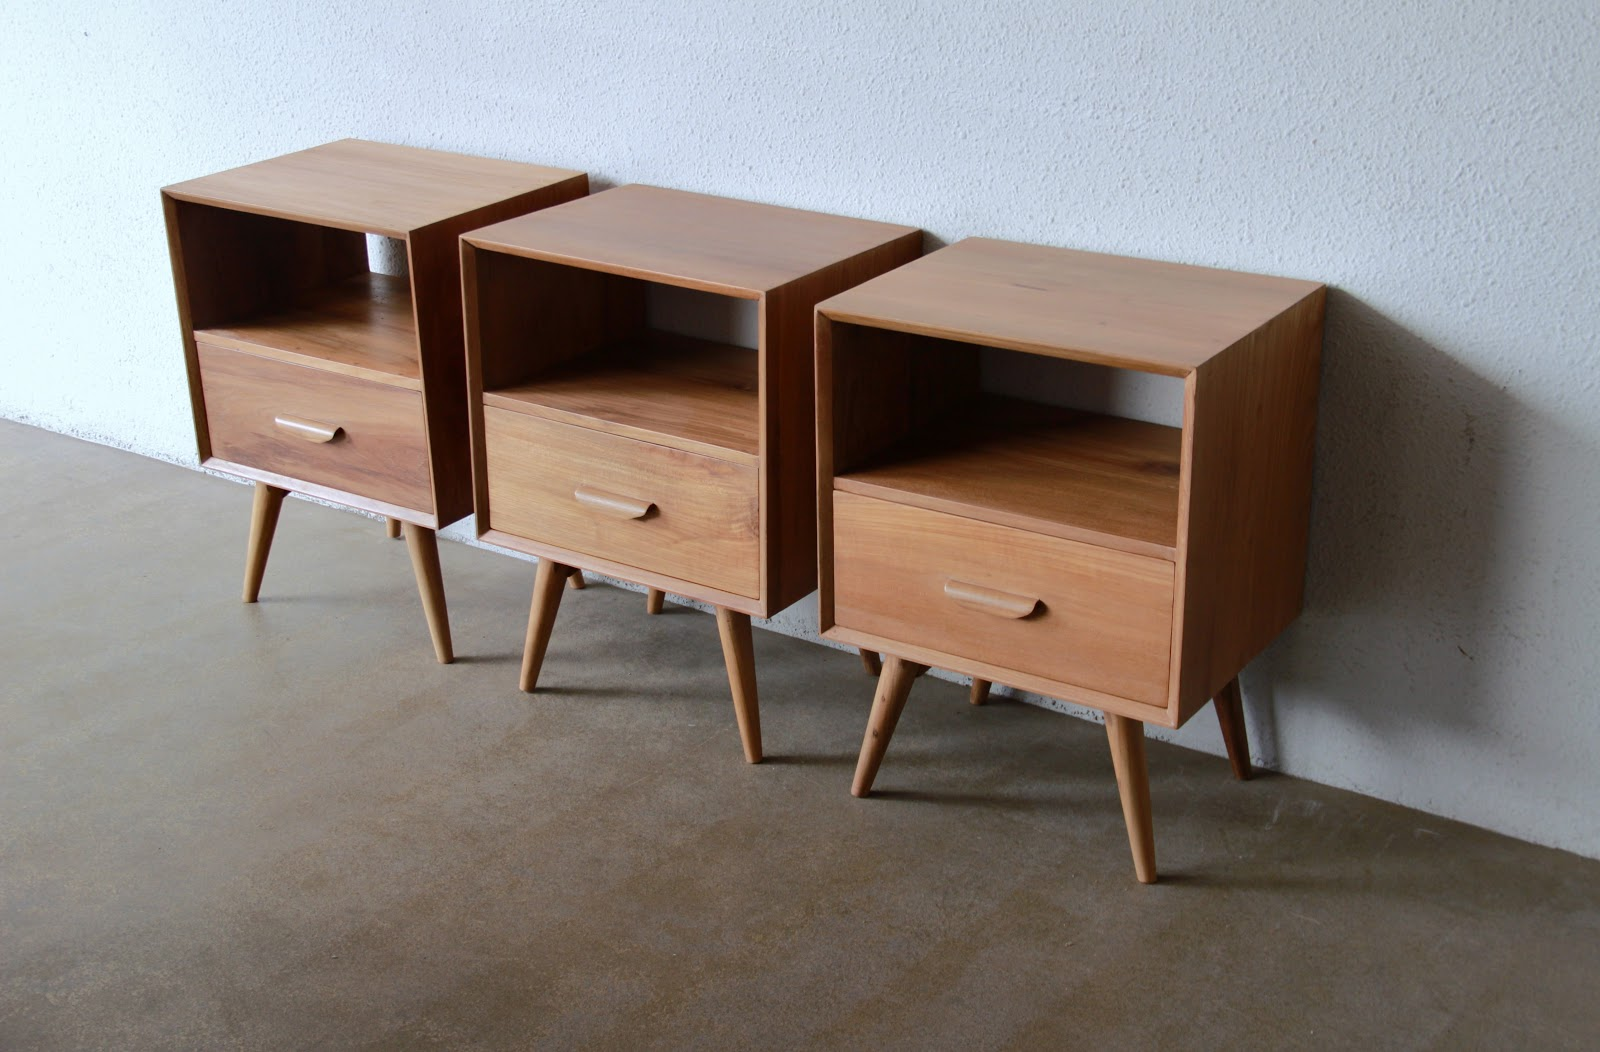 Second Charm Furniture Latest Collections Of Midcentury